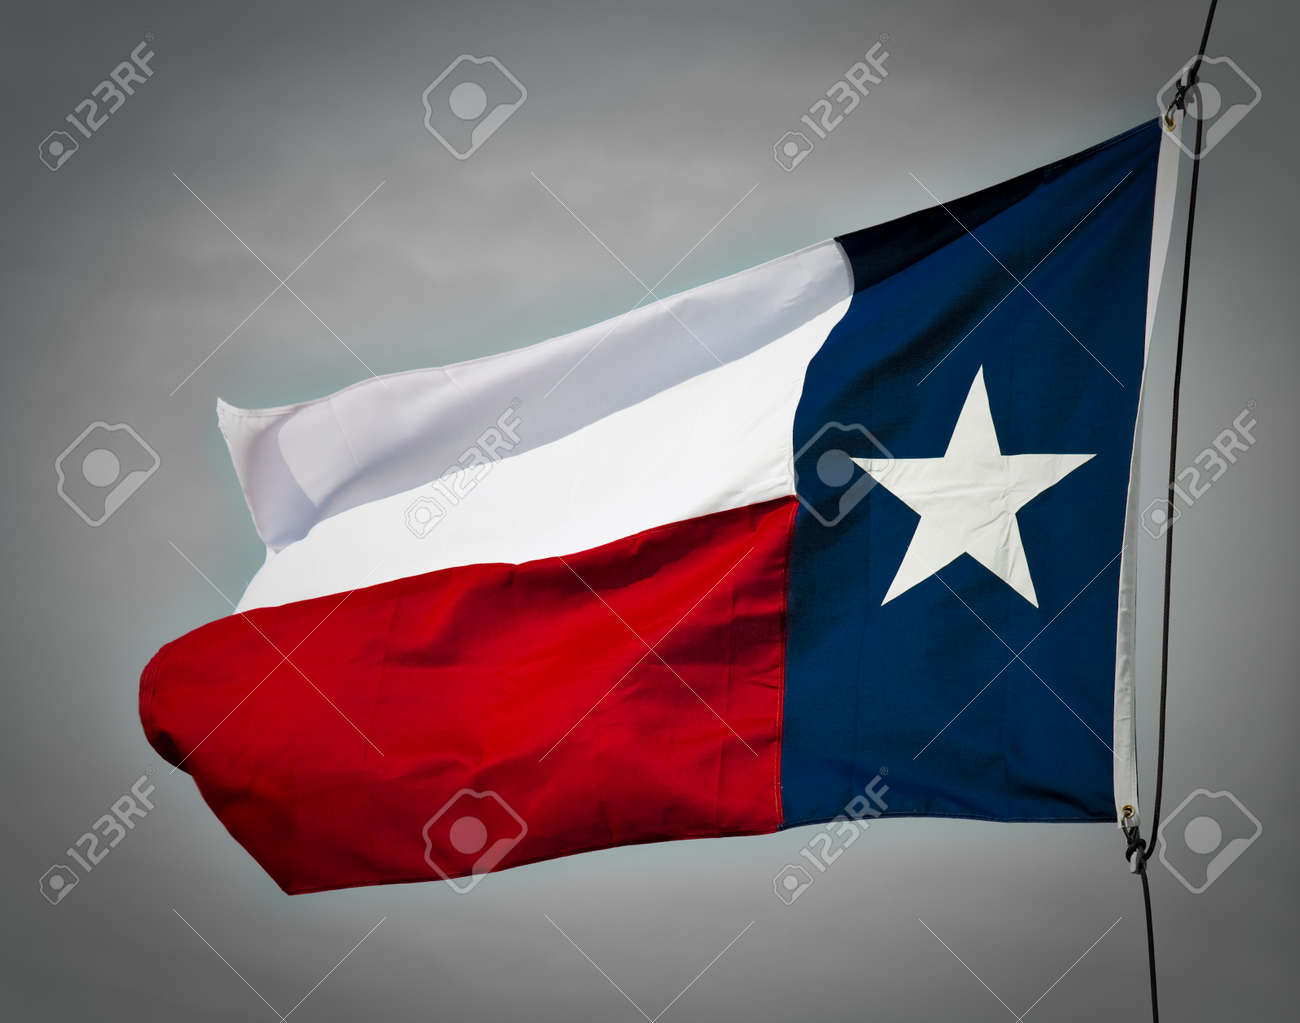 A new Texas flag flapping in the wind. Stock Photo - 7765216